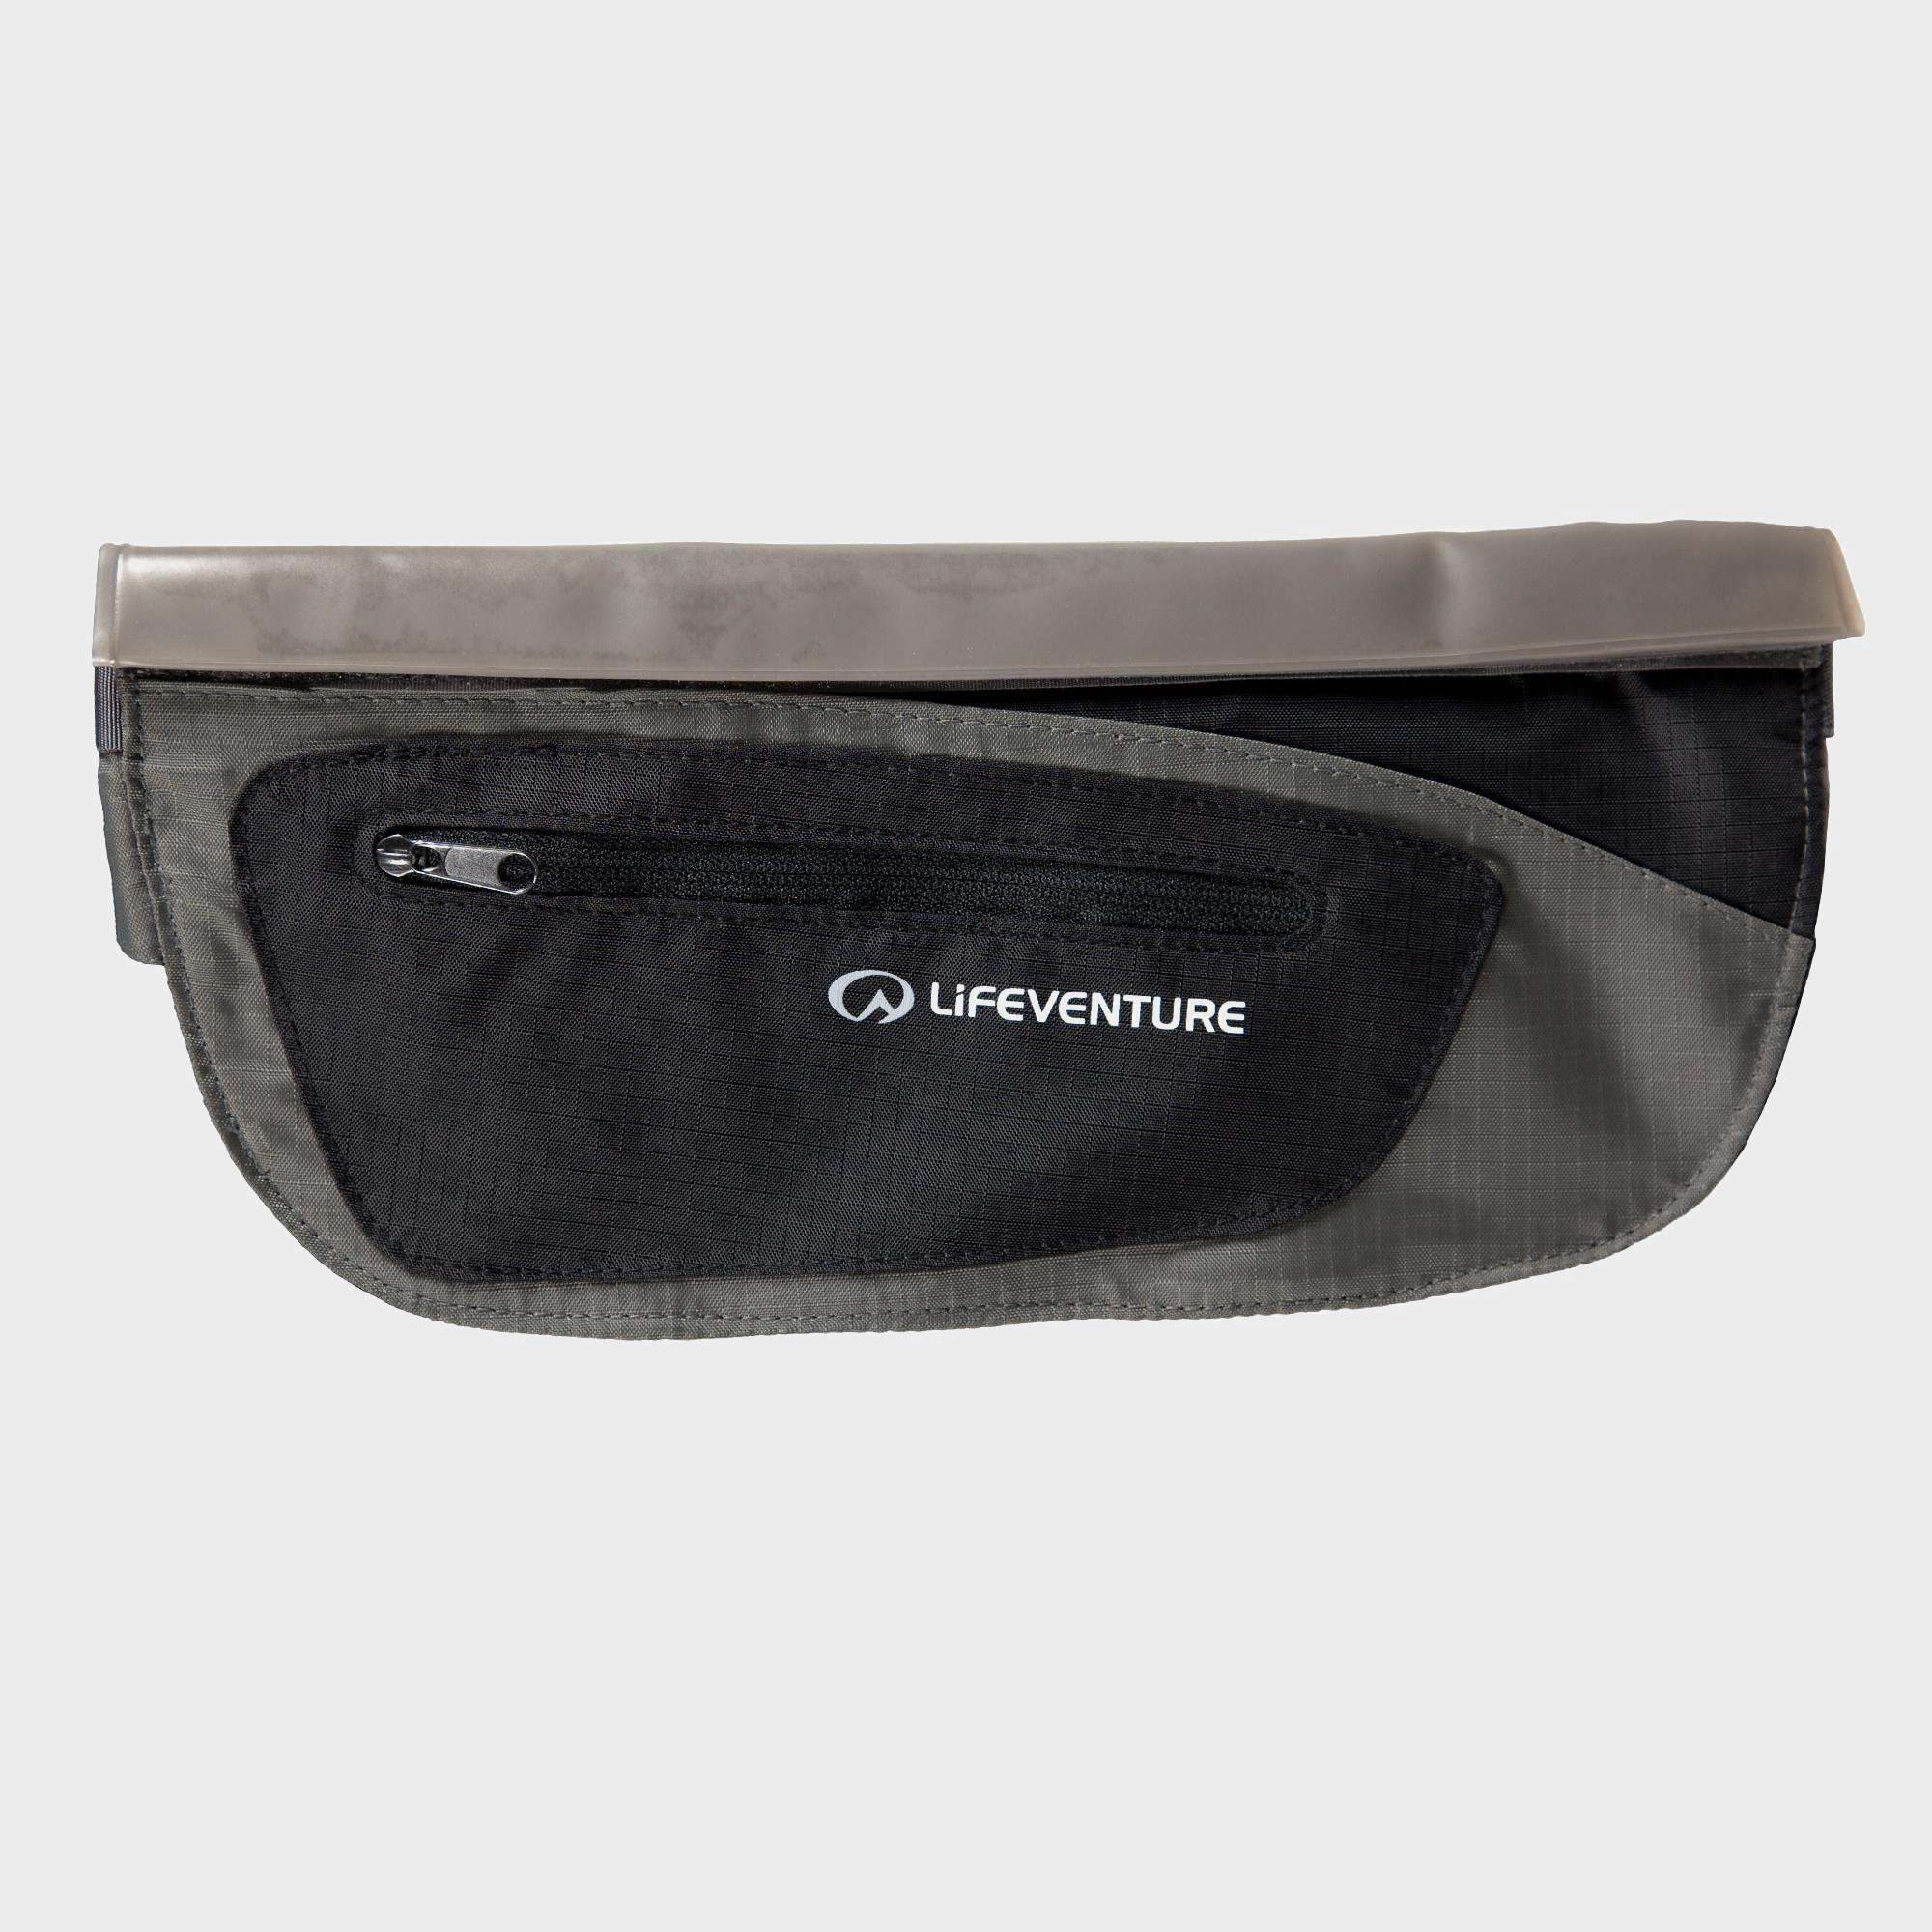 LIFEVENTURE Body Wallet DRiPOUCH - Waist